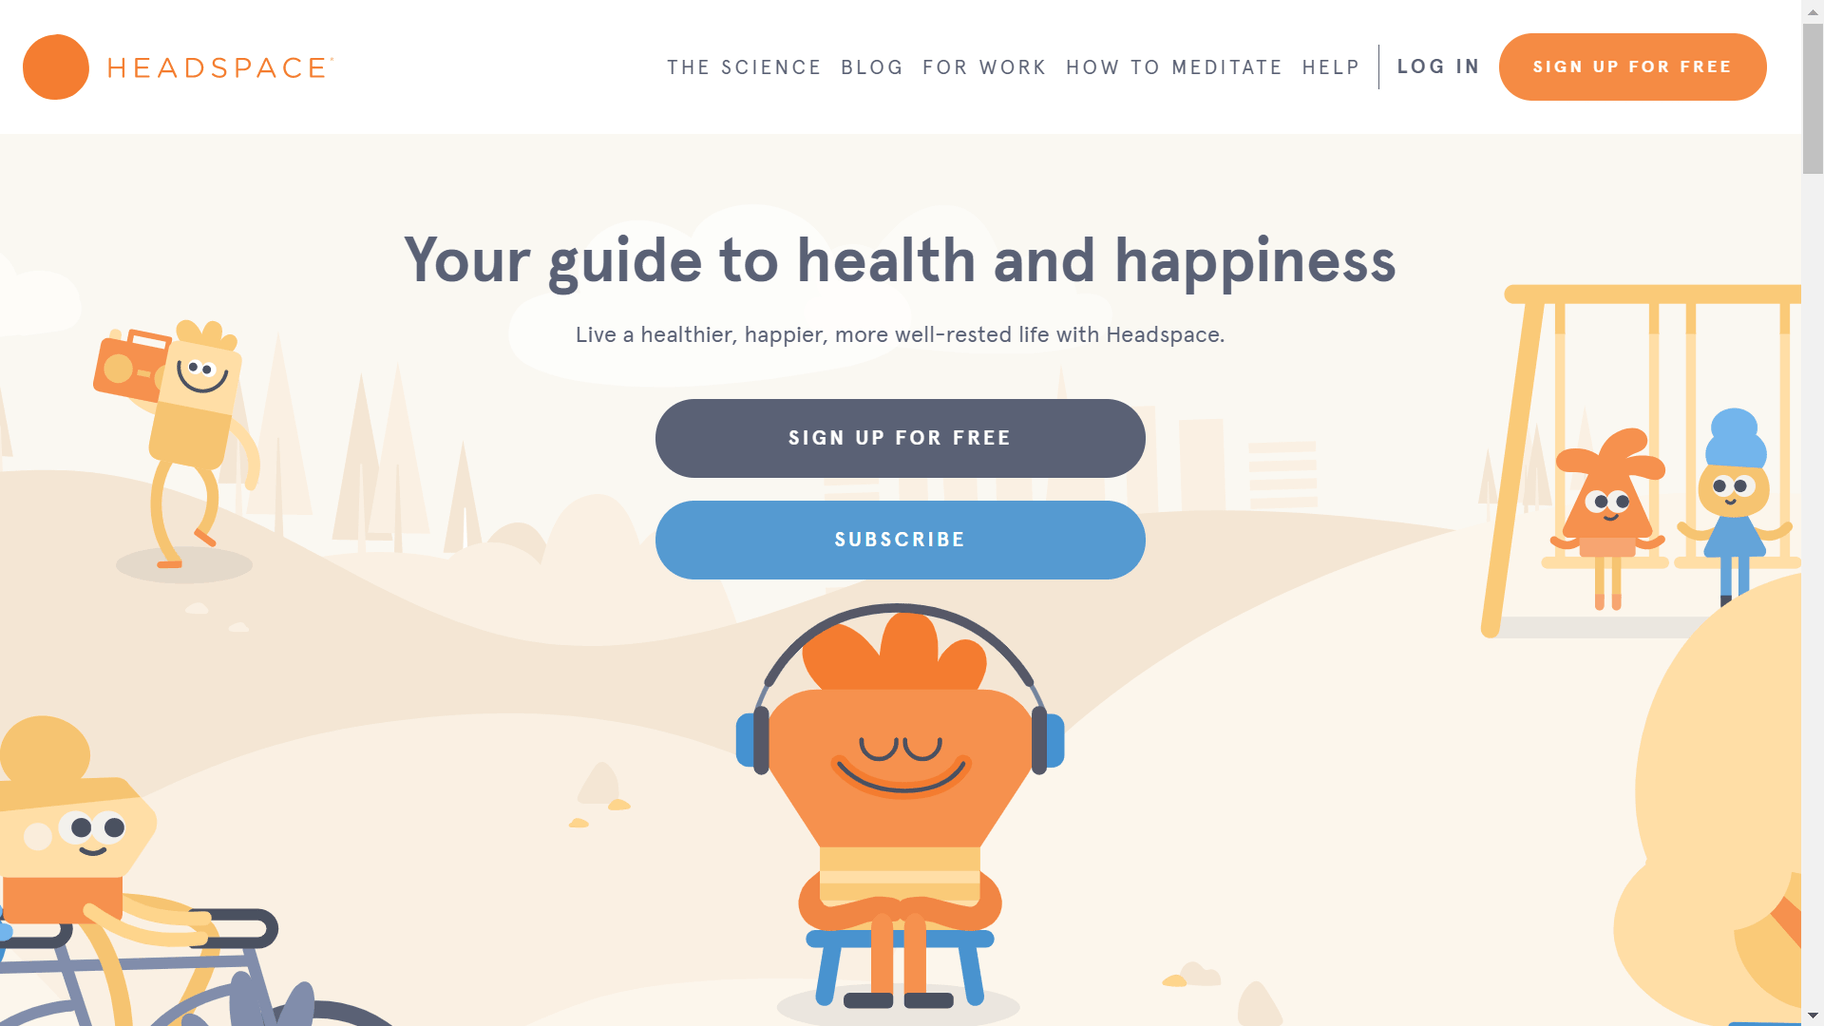 headspace brand image